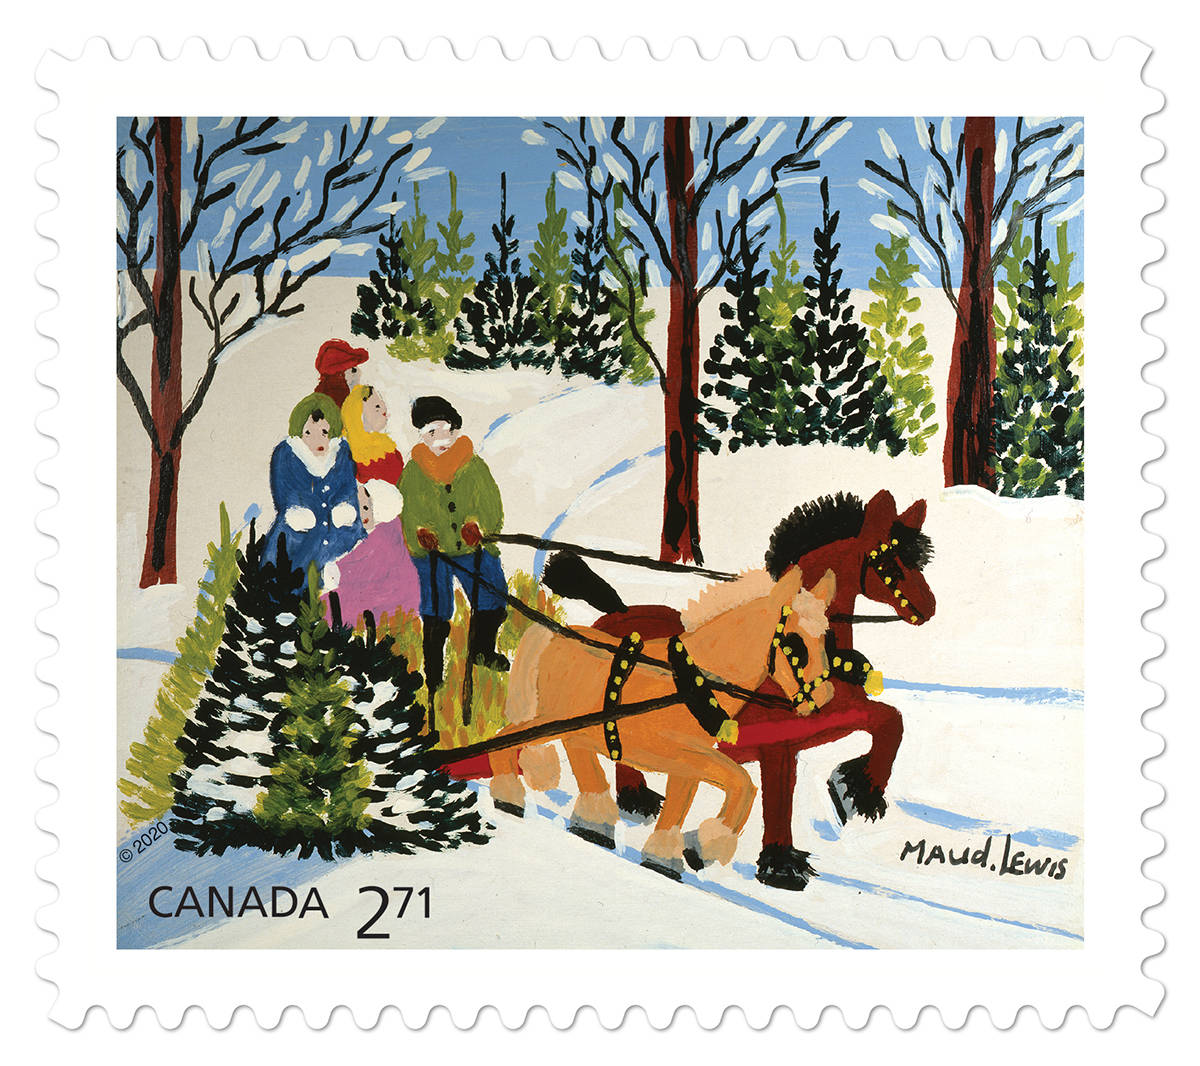 The Family and Sled stamp from Canada Post for the 2020 holiday season. (Canada Post)